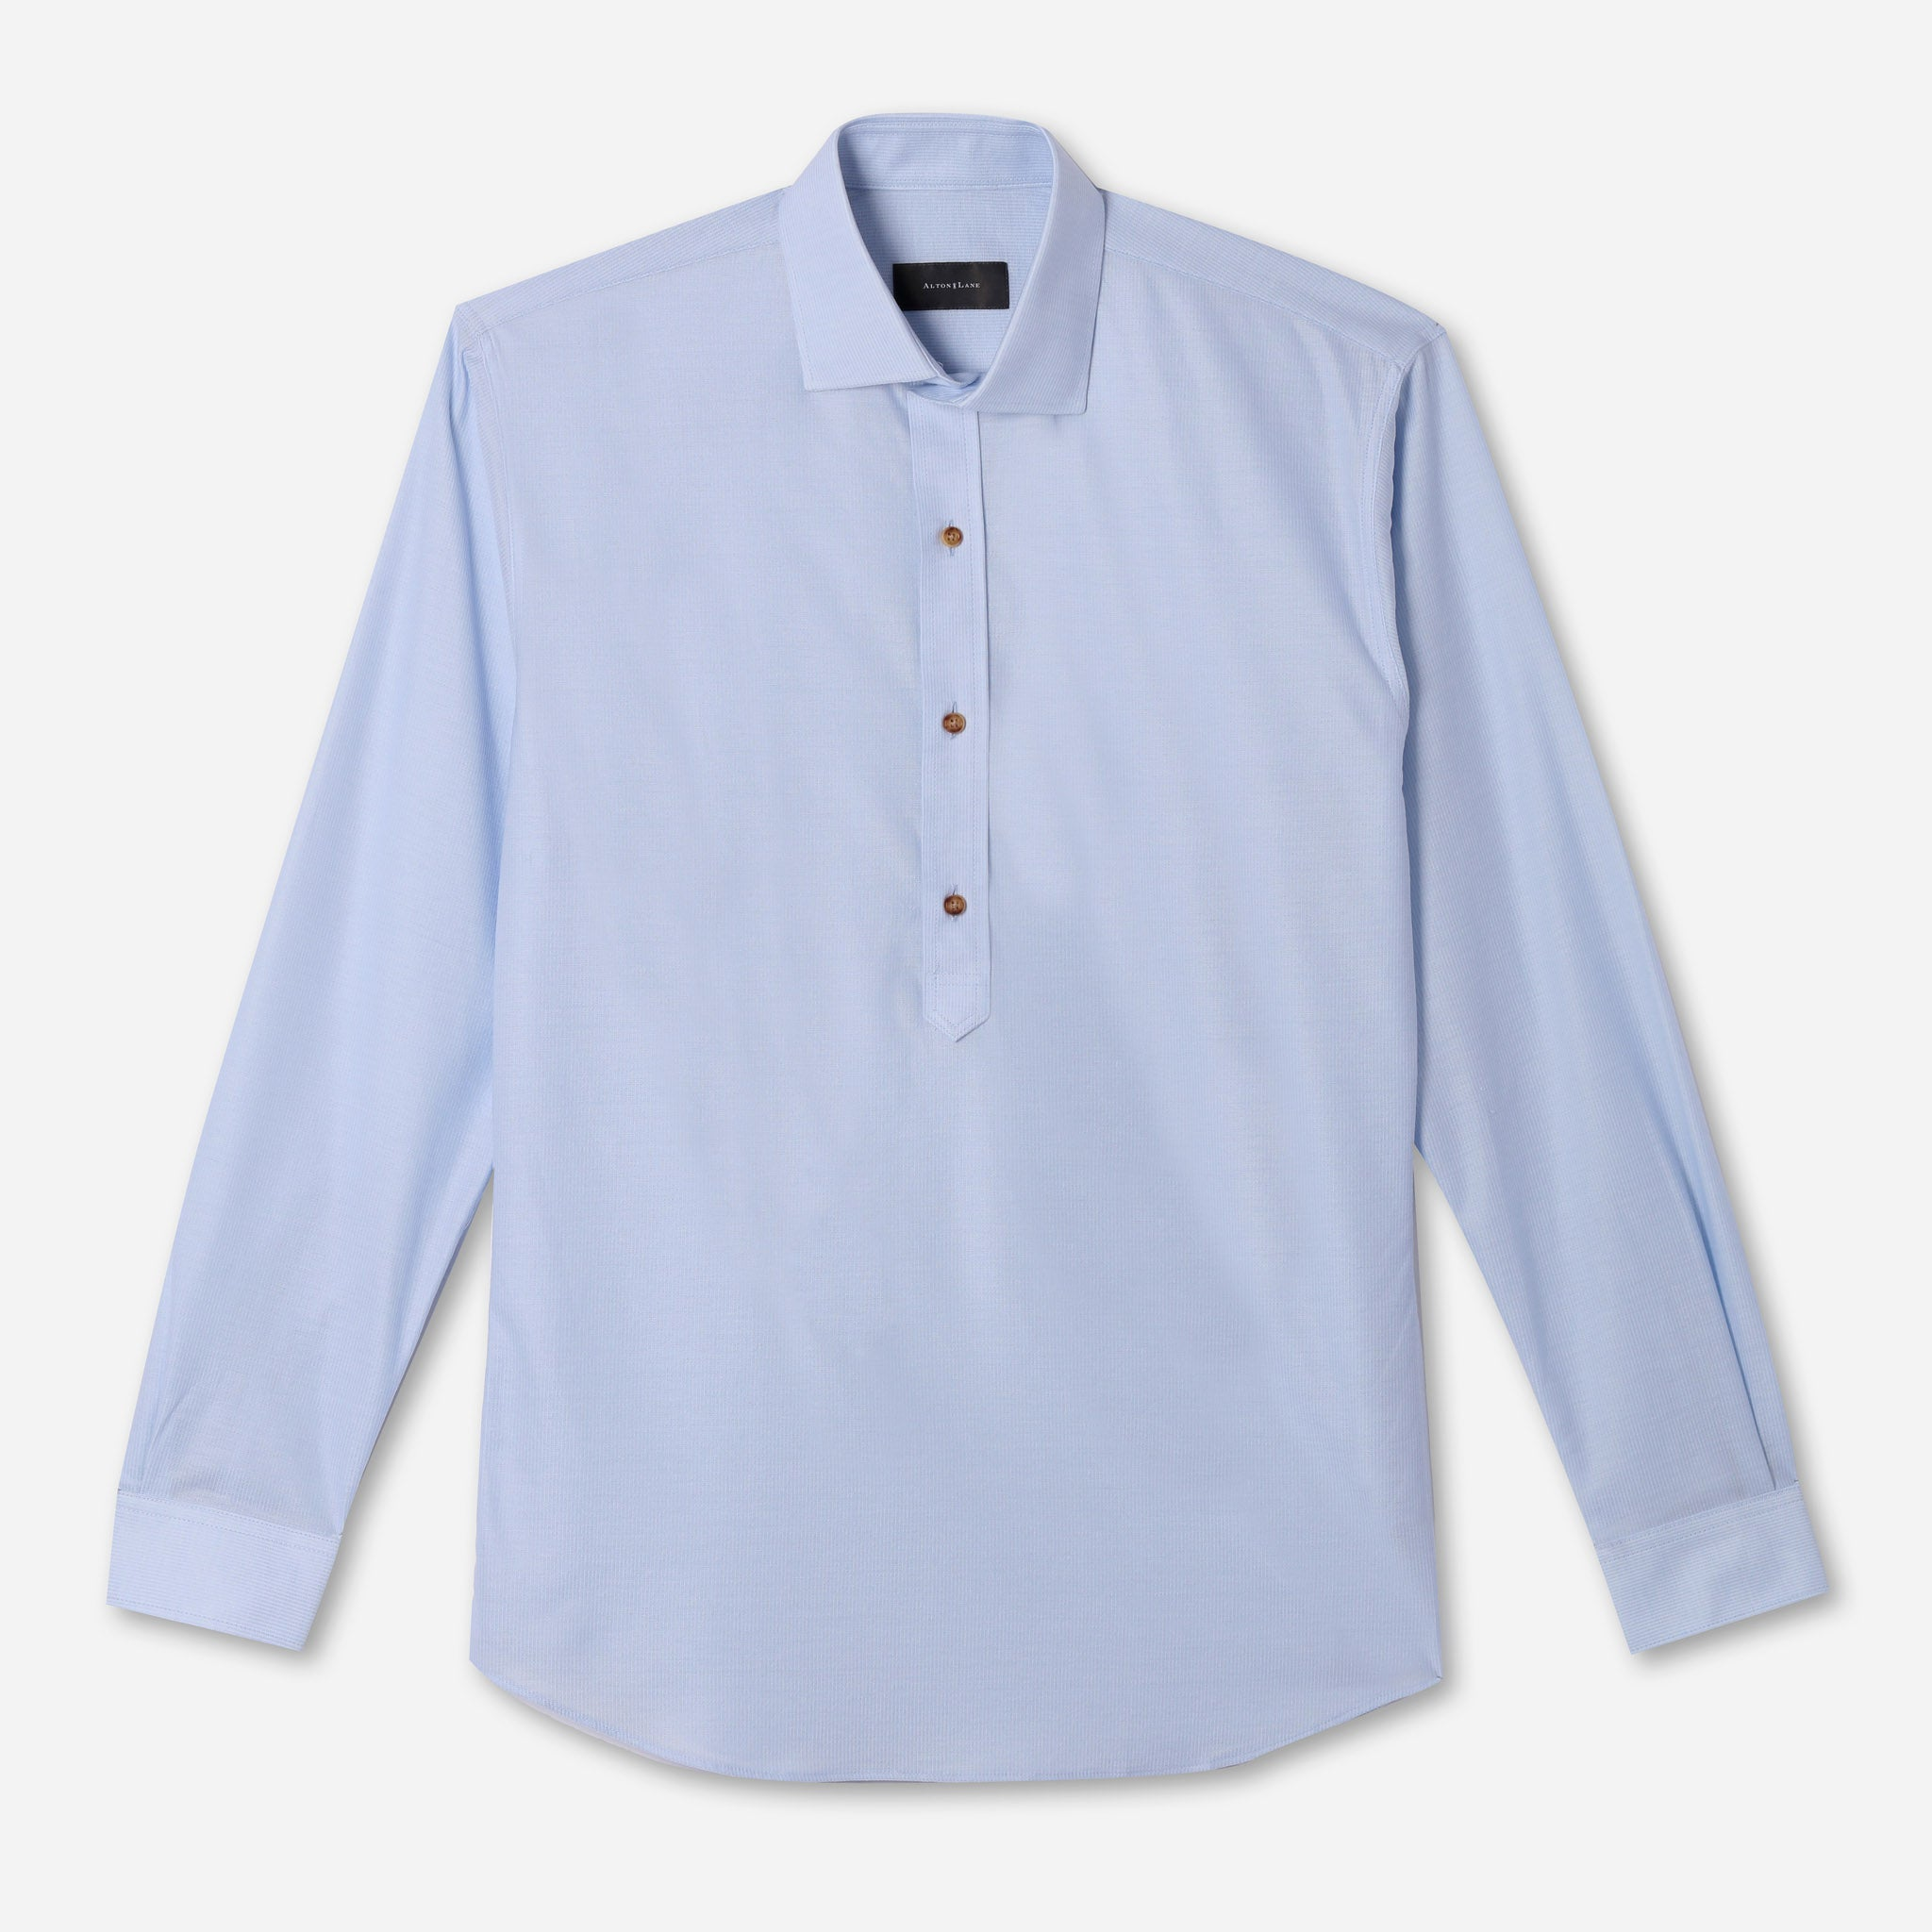 Harris Luxe Popover in Light Blue Microstripe